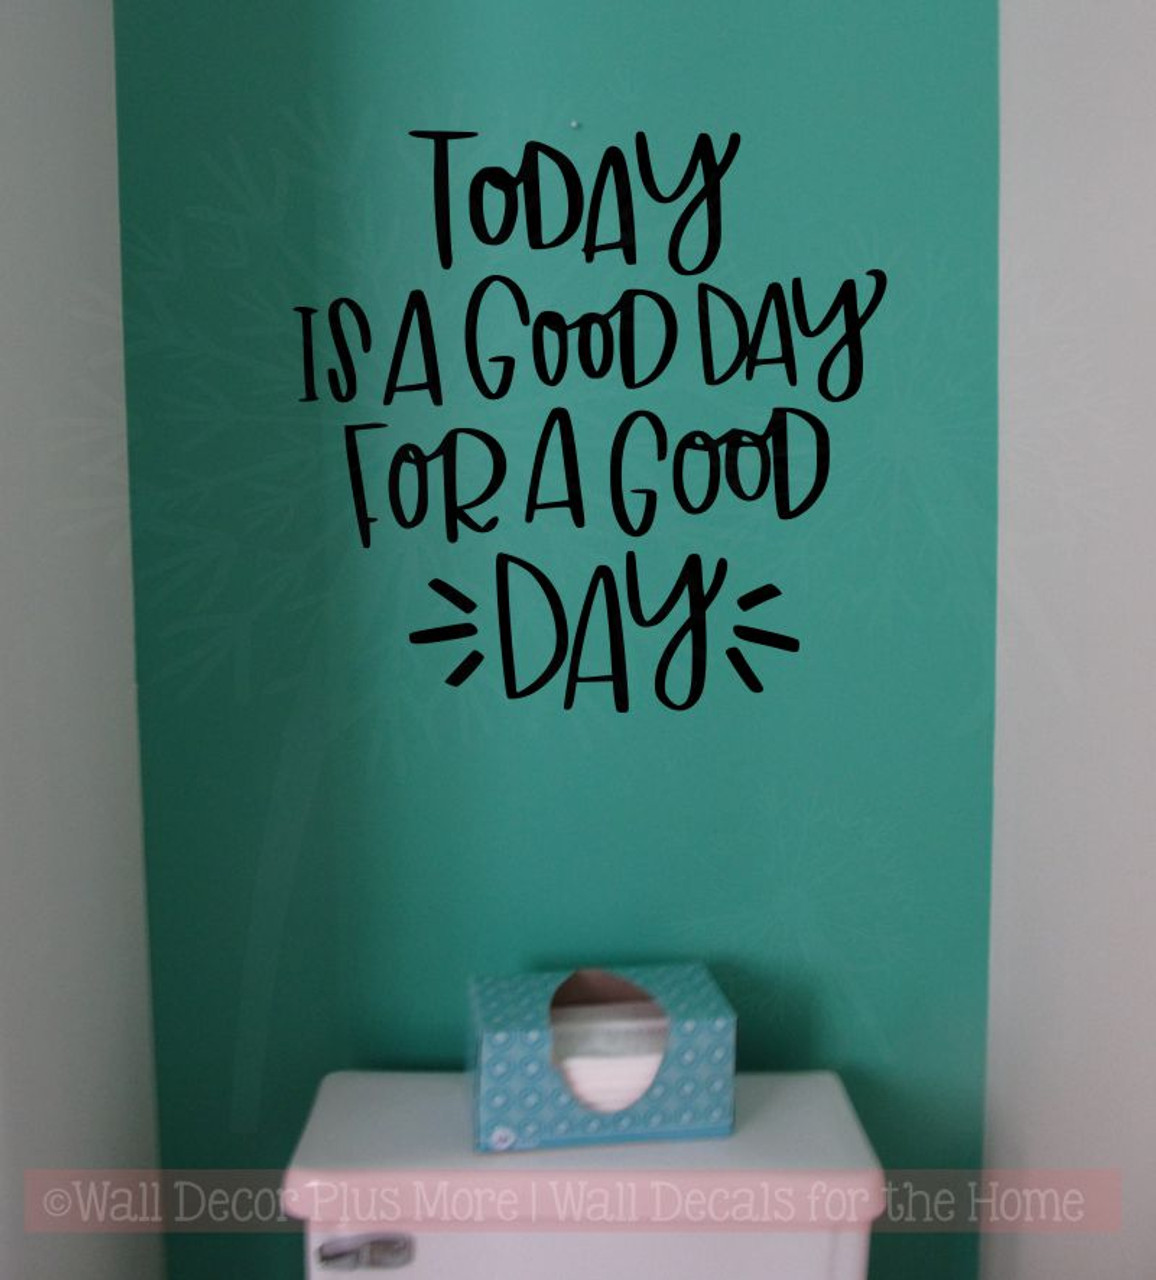 Good Day Quotes Inspirational: Today Is A Good Day Vinyl Lettering Stickers Inspirational